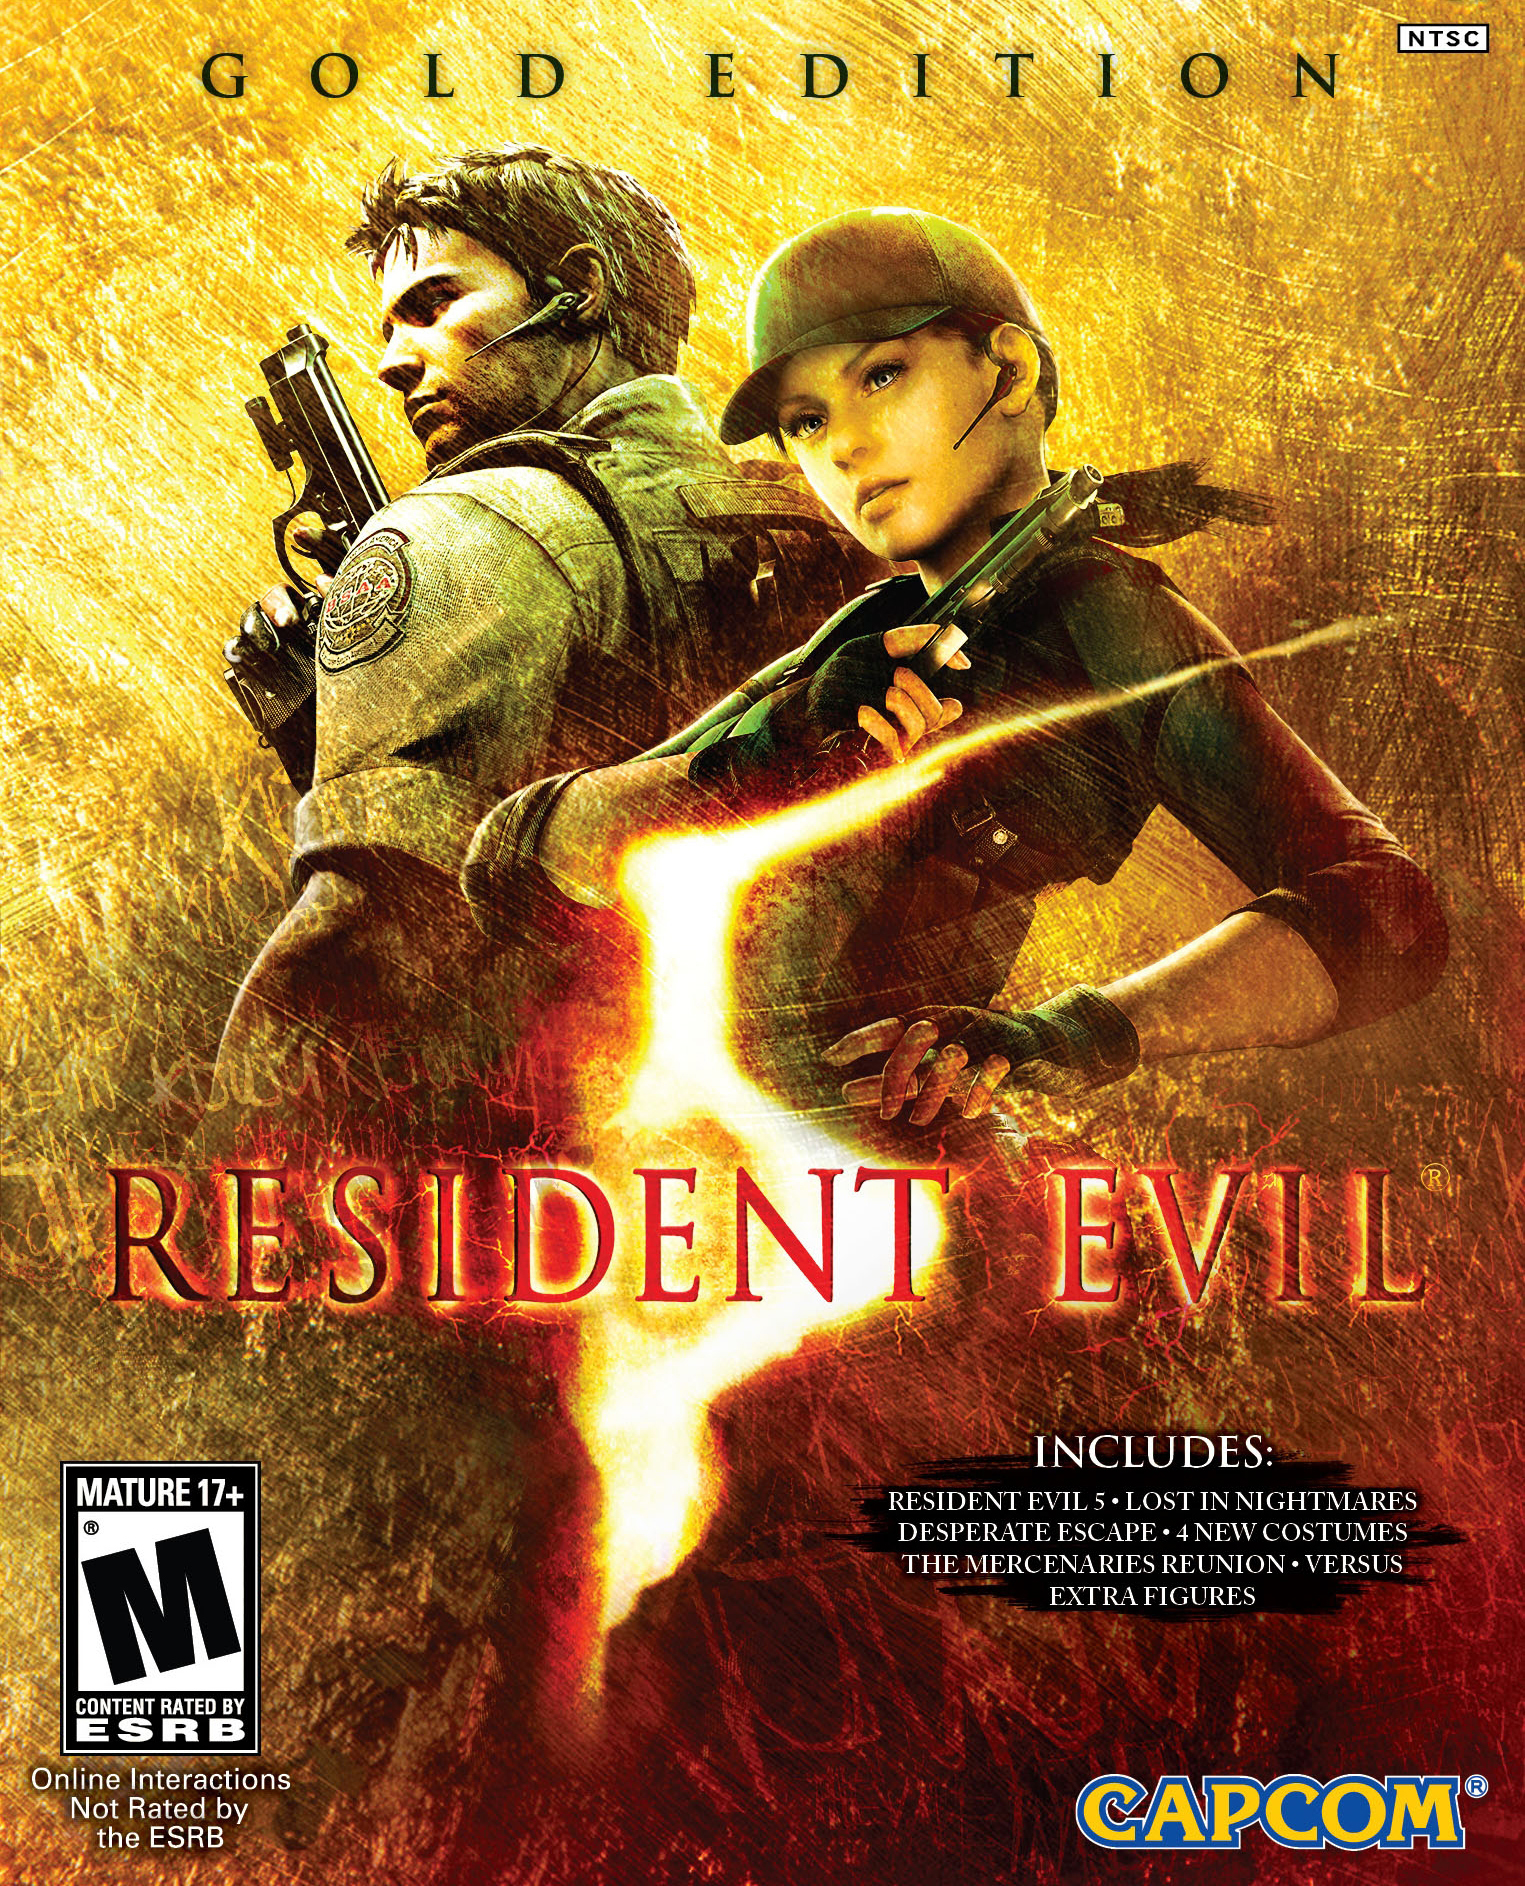 Resident Evil 5 Gold Edition 2009 Games Direct